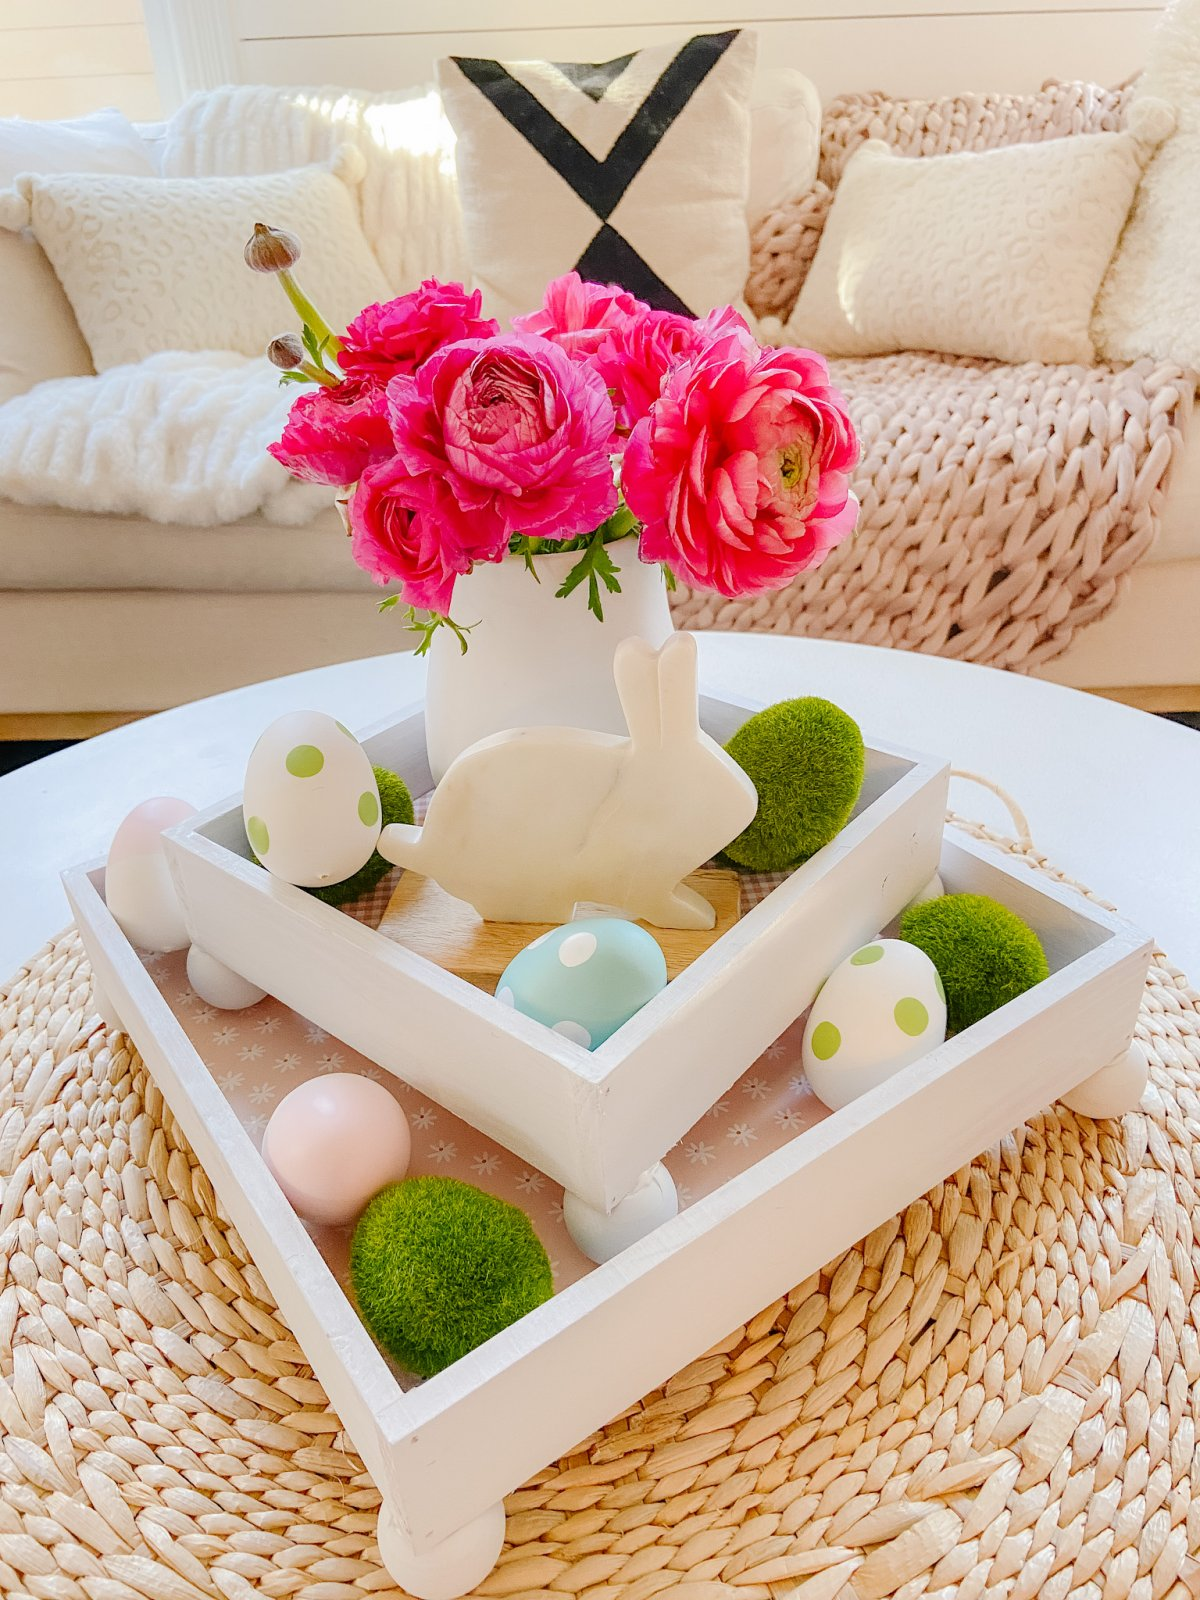 DIY Spring Footed Stacking Tray Centerpiece. Add ball feet to simple wood boxes, add scrapbook paper and layer with fresh flowers and spring items for a pretty centerpiece!